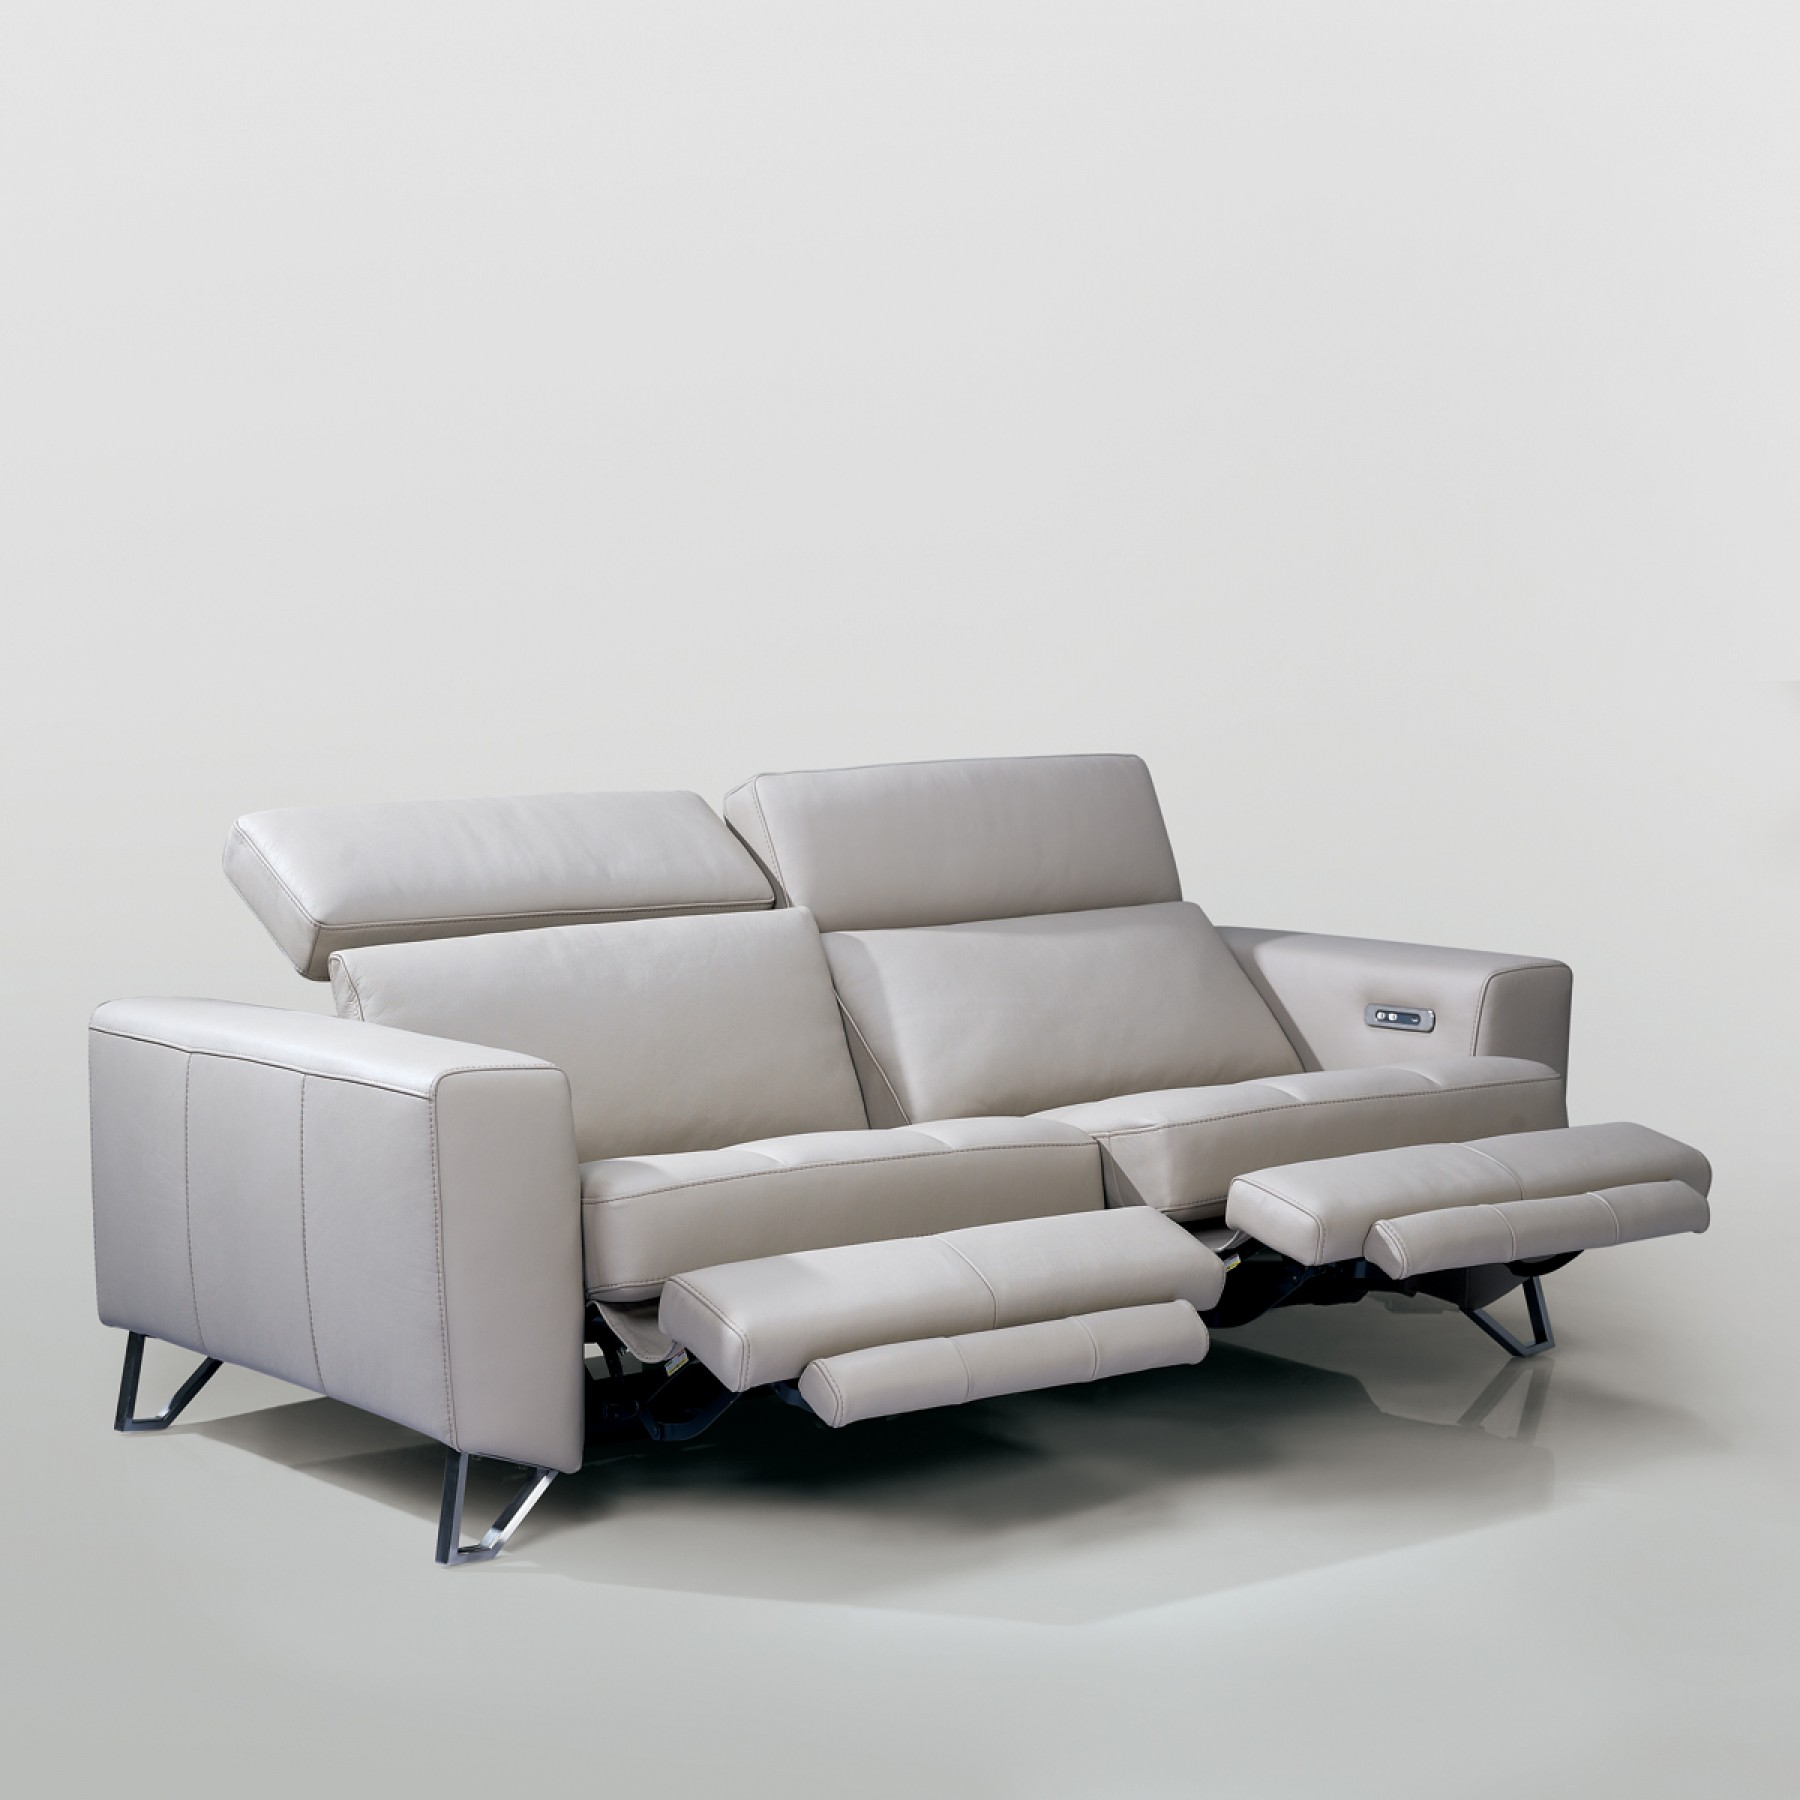 In Your Place Furniture  Shop Indoor Furniture and